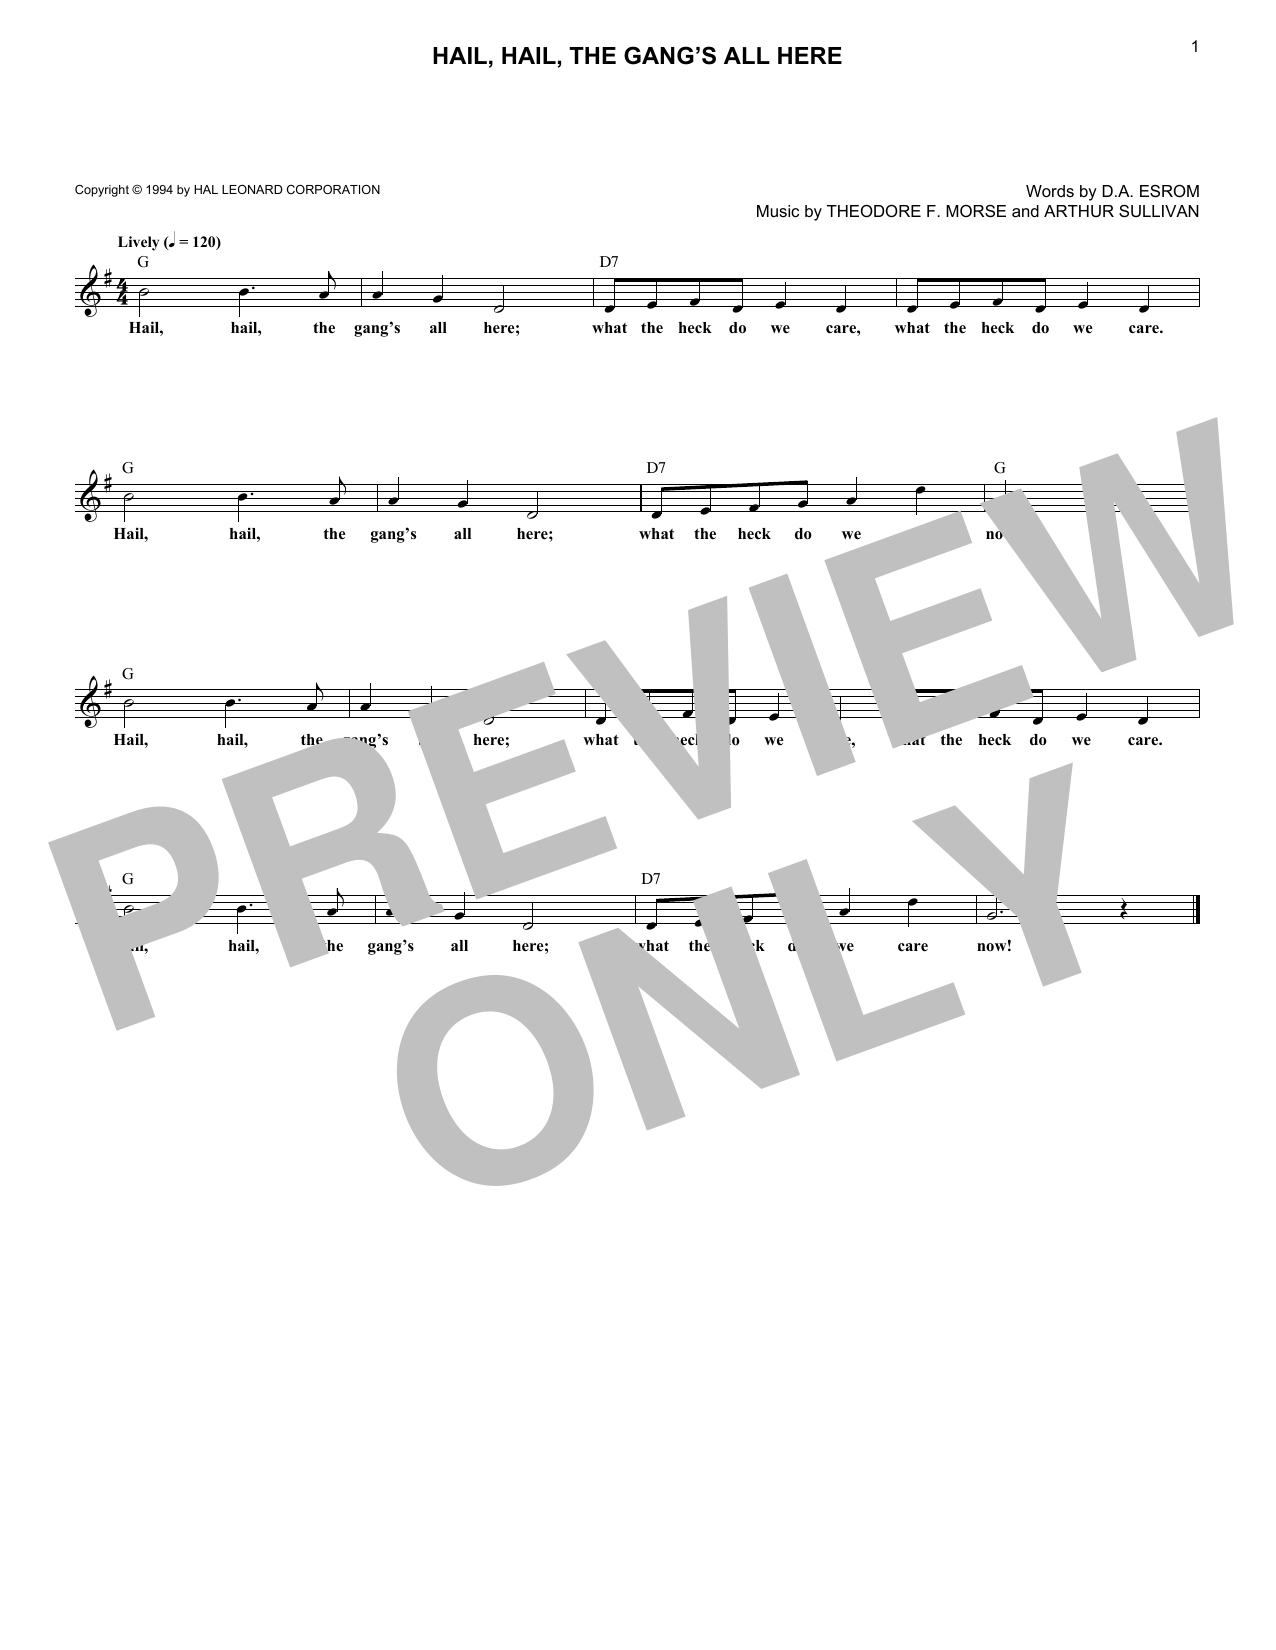 Arthur Seymour Sullivan Hail, Hail, The Gang's All Here sheet music notes and chords. Download Printable PDF.